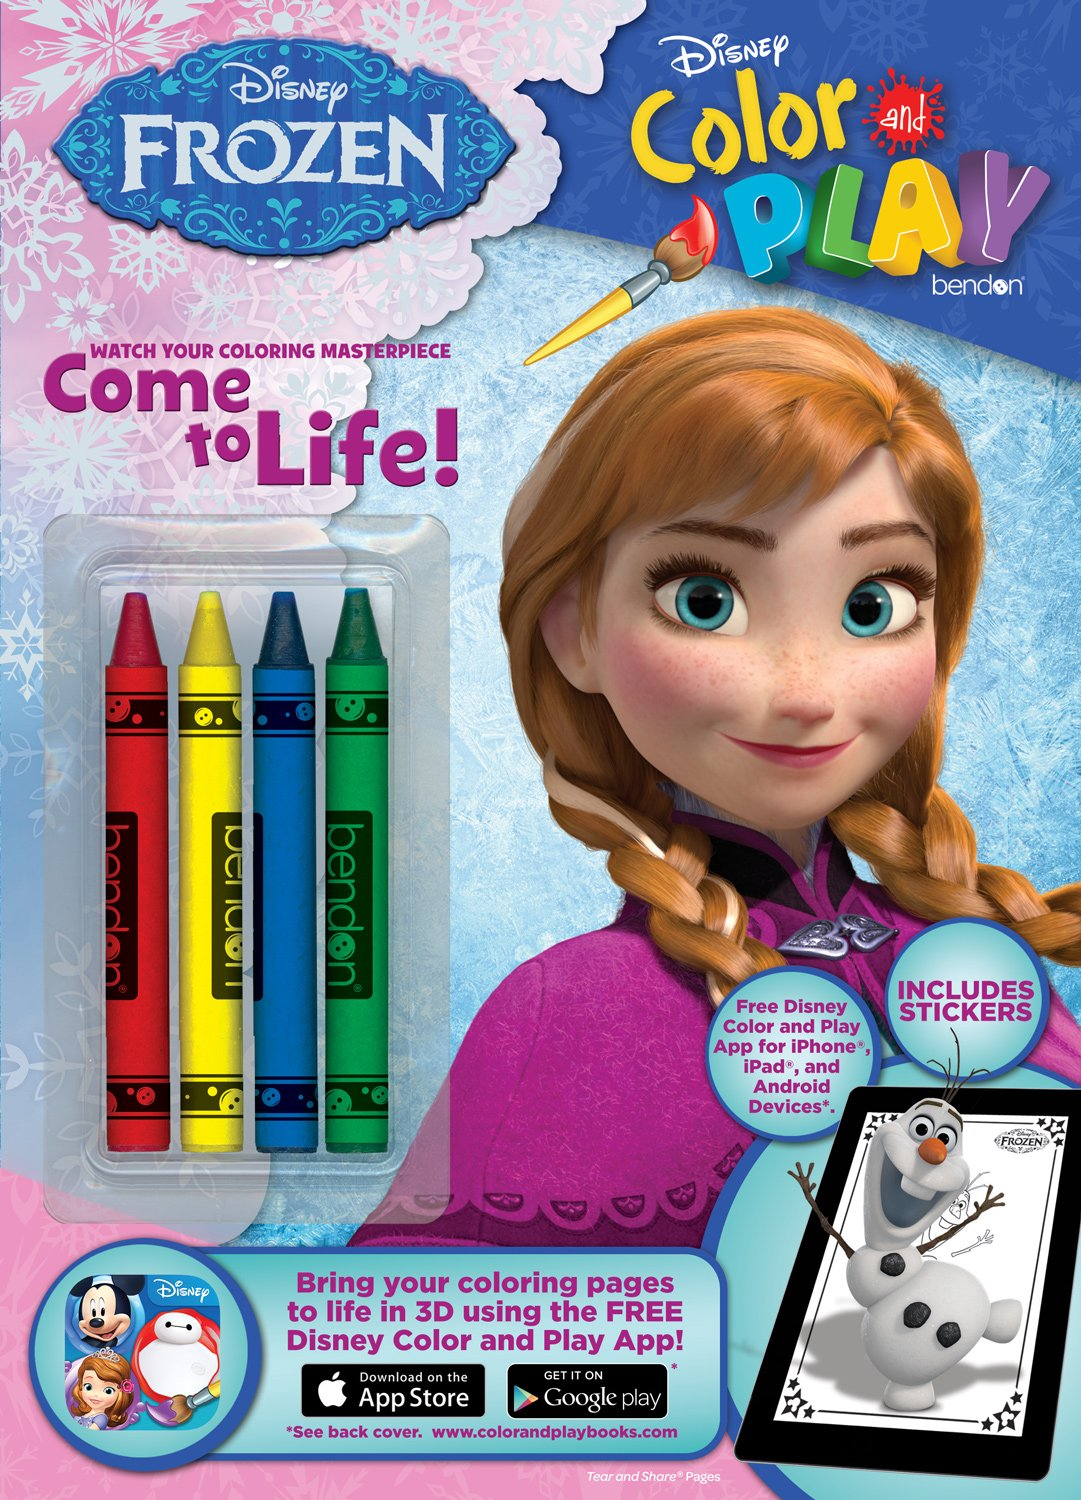 Bendon Disney Frozen Color And Play 32 Page Activity Book COR 9781505003826 Amazon Books